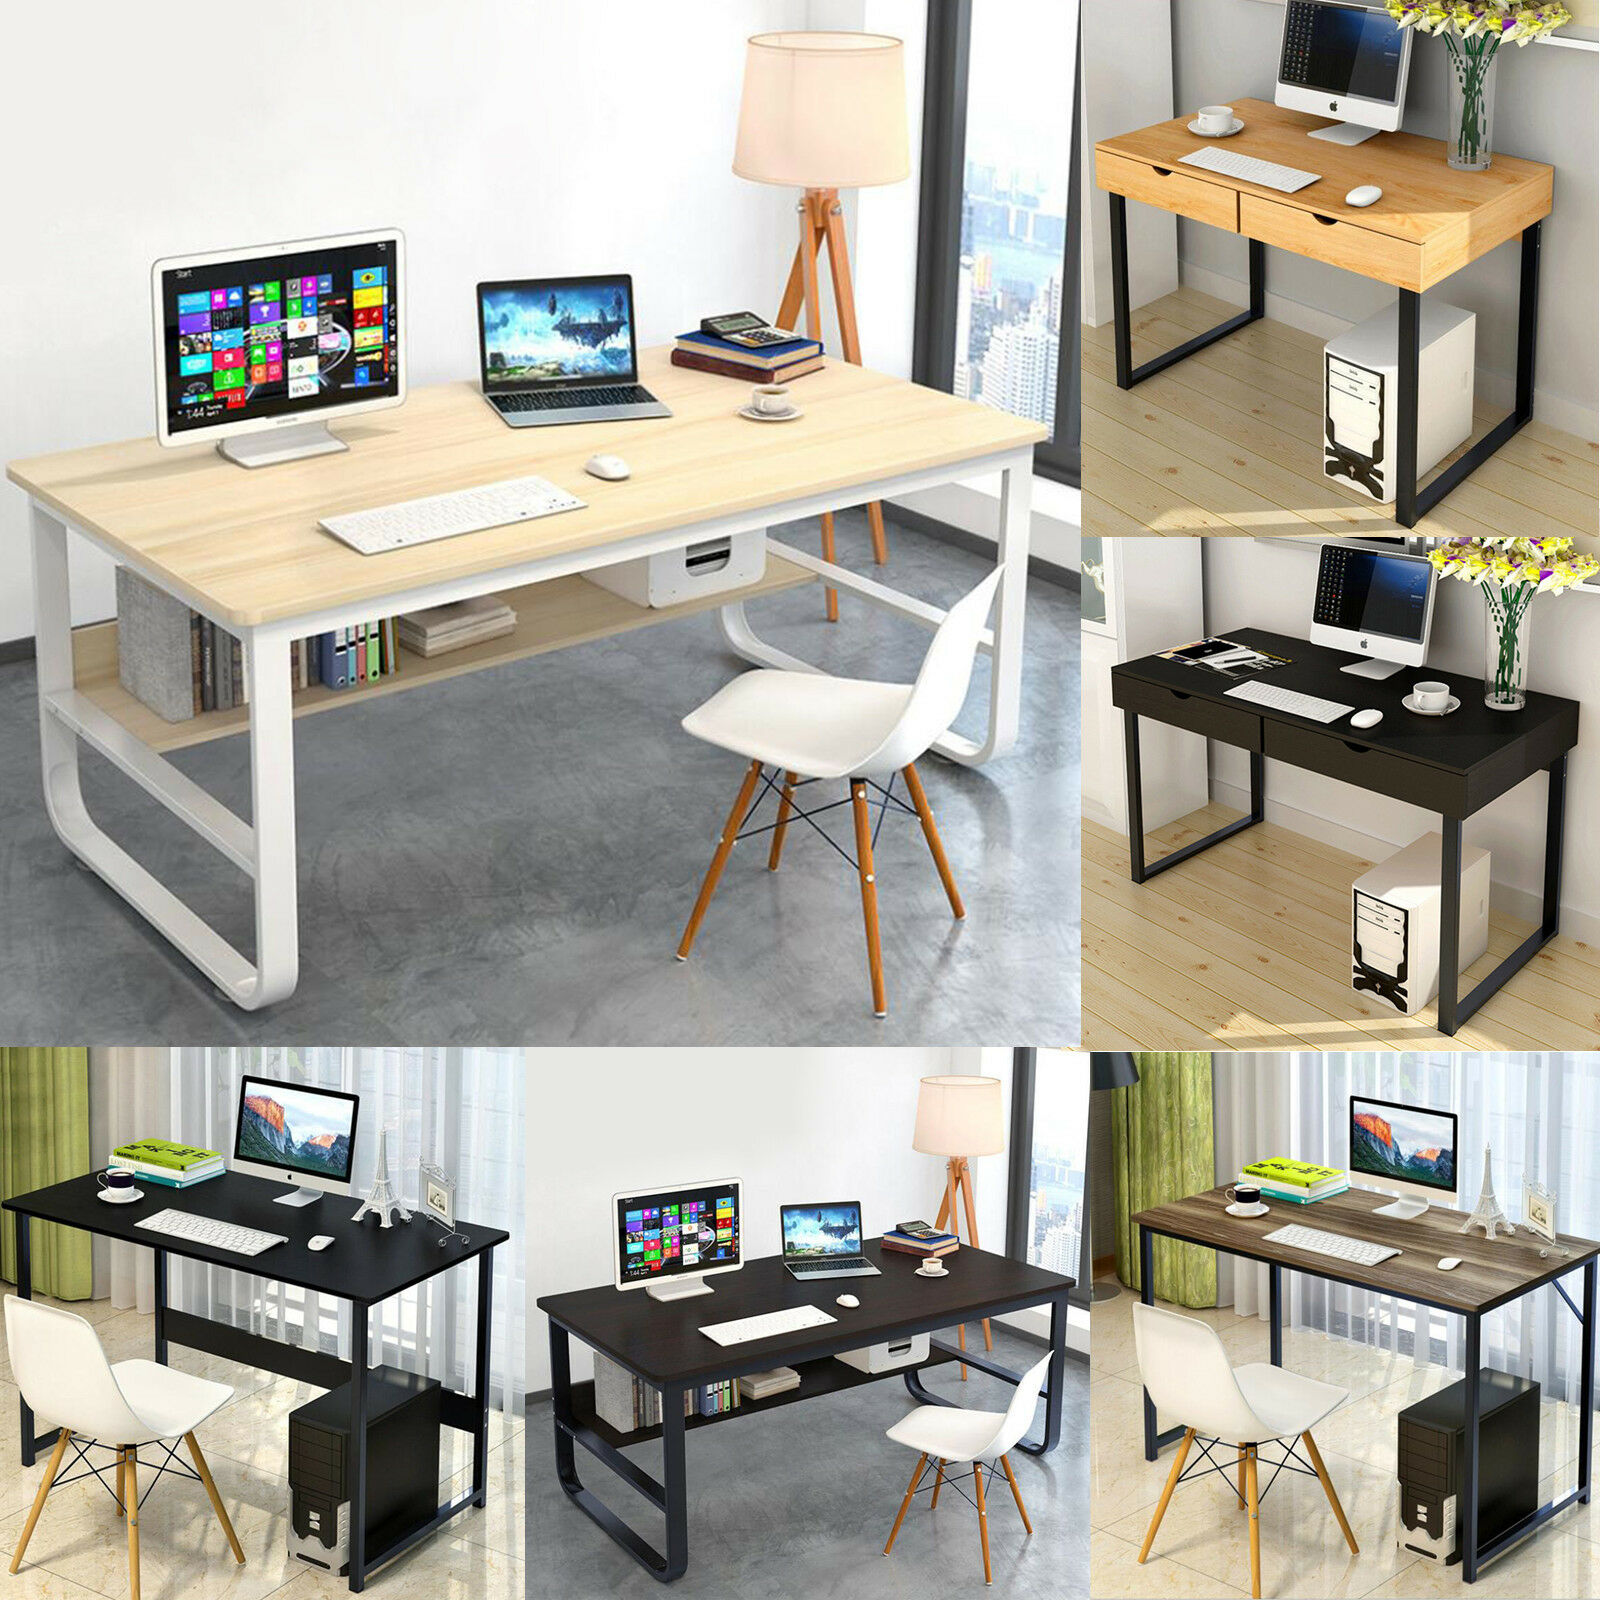 UK/US Home Computer Desk Table Workstation Office Laptop PC Desktop Study Shelf Office With 2 Drawers / Bookshelf  2 Color